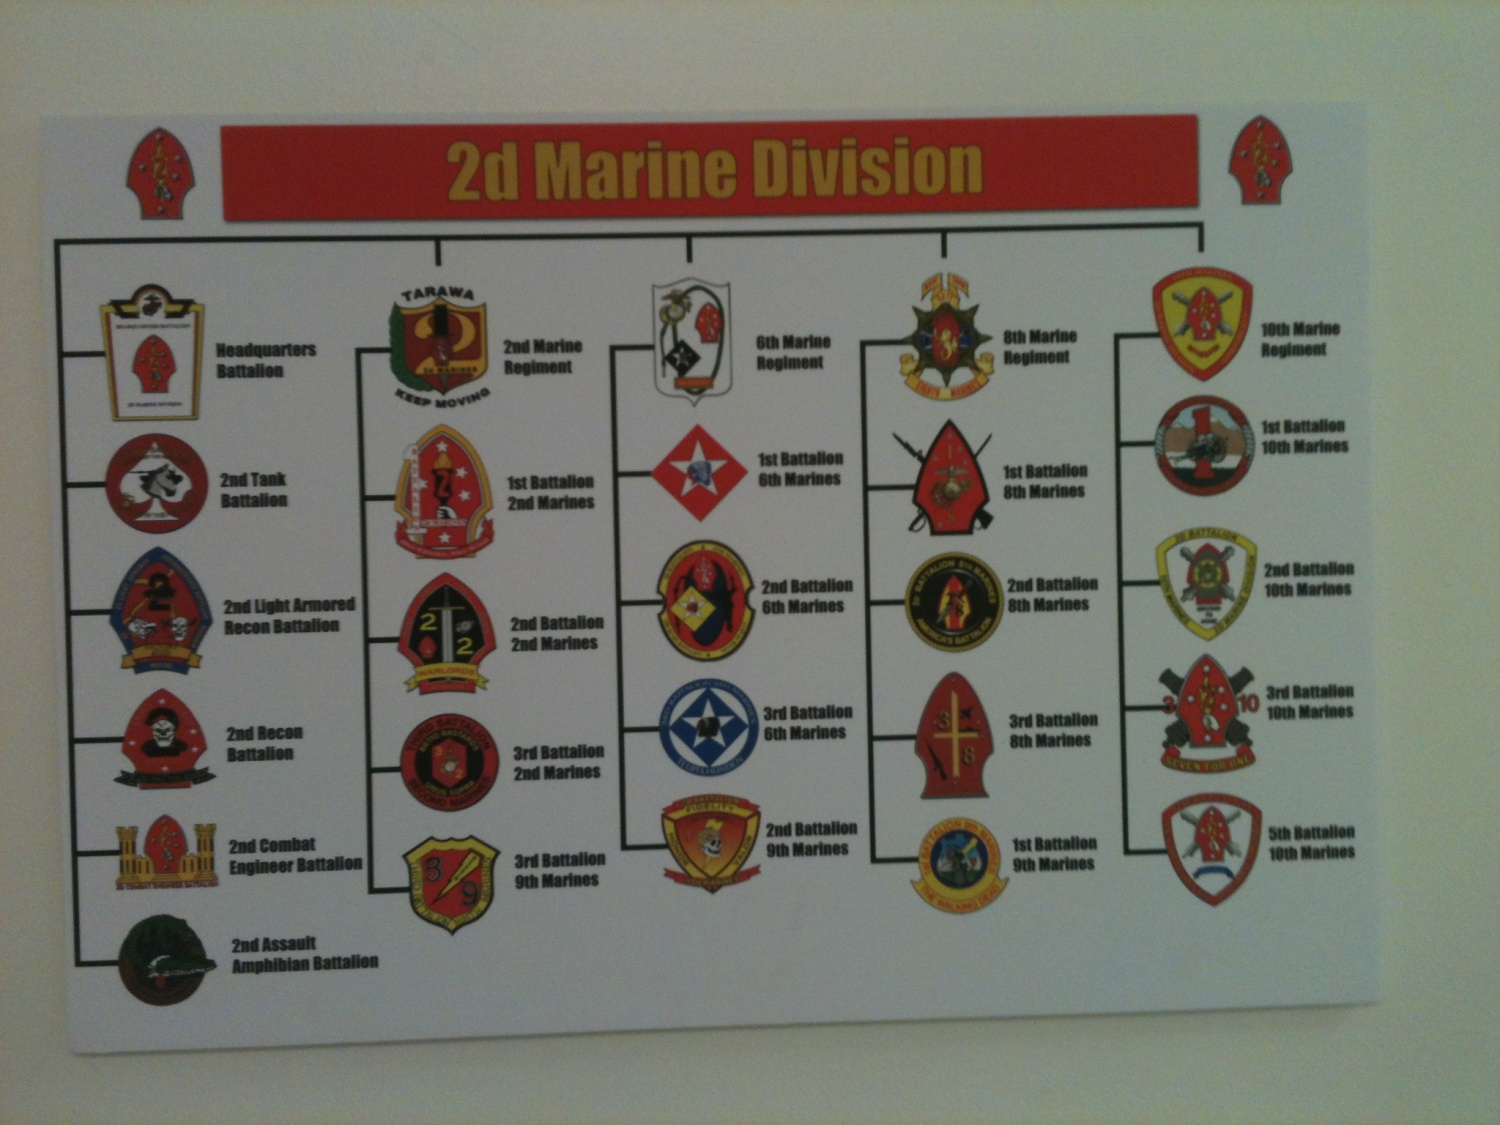 inside a marine armory the firearm blogthe firearm blog a chart showing all the battalions or unit and how they re organized in the 2nd marine division which is based at camp lejeune north carolina